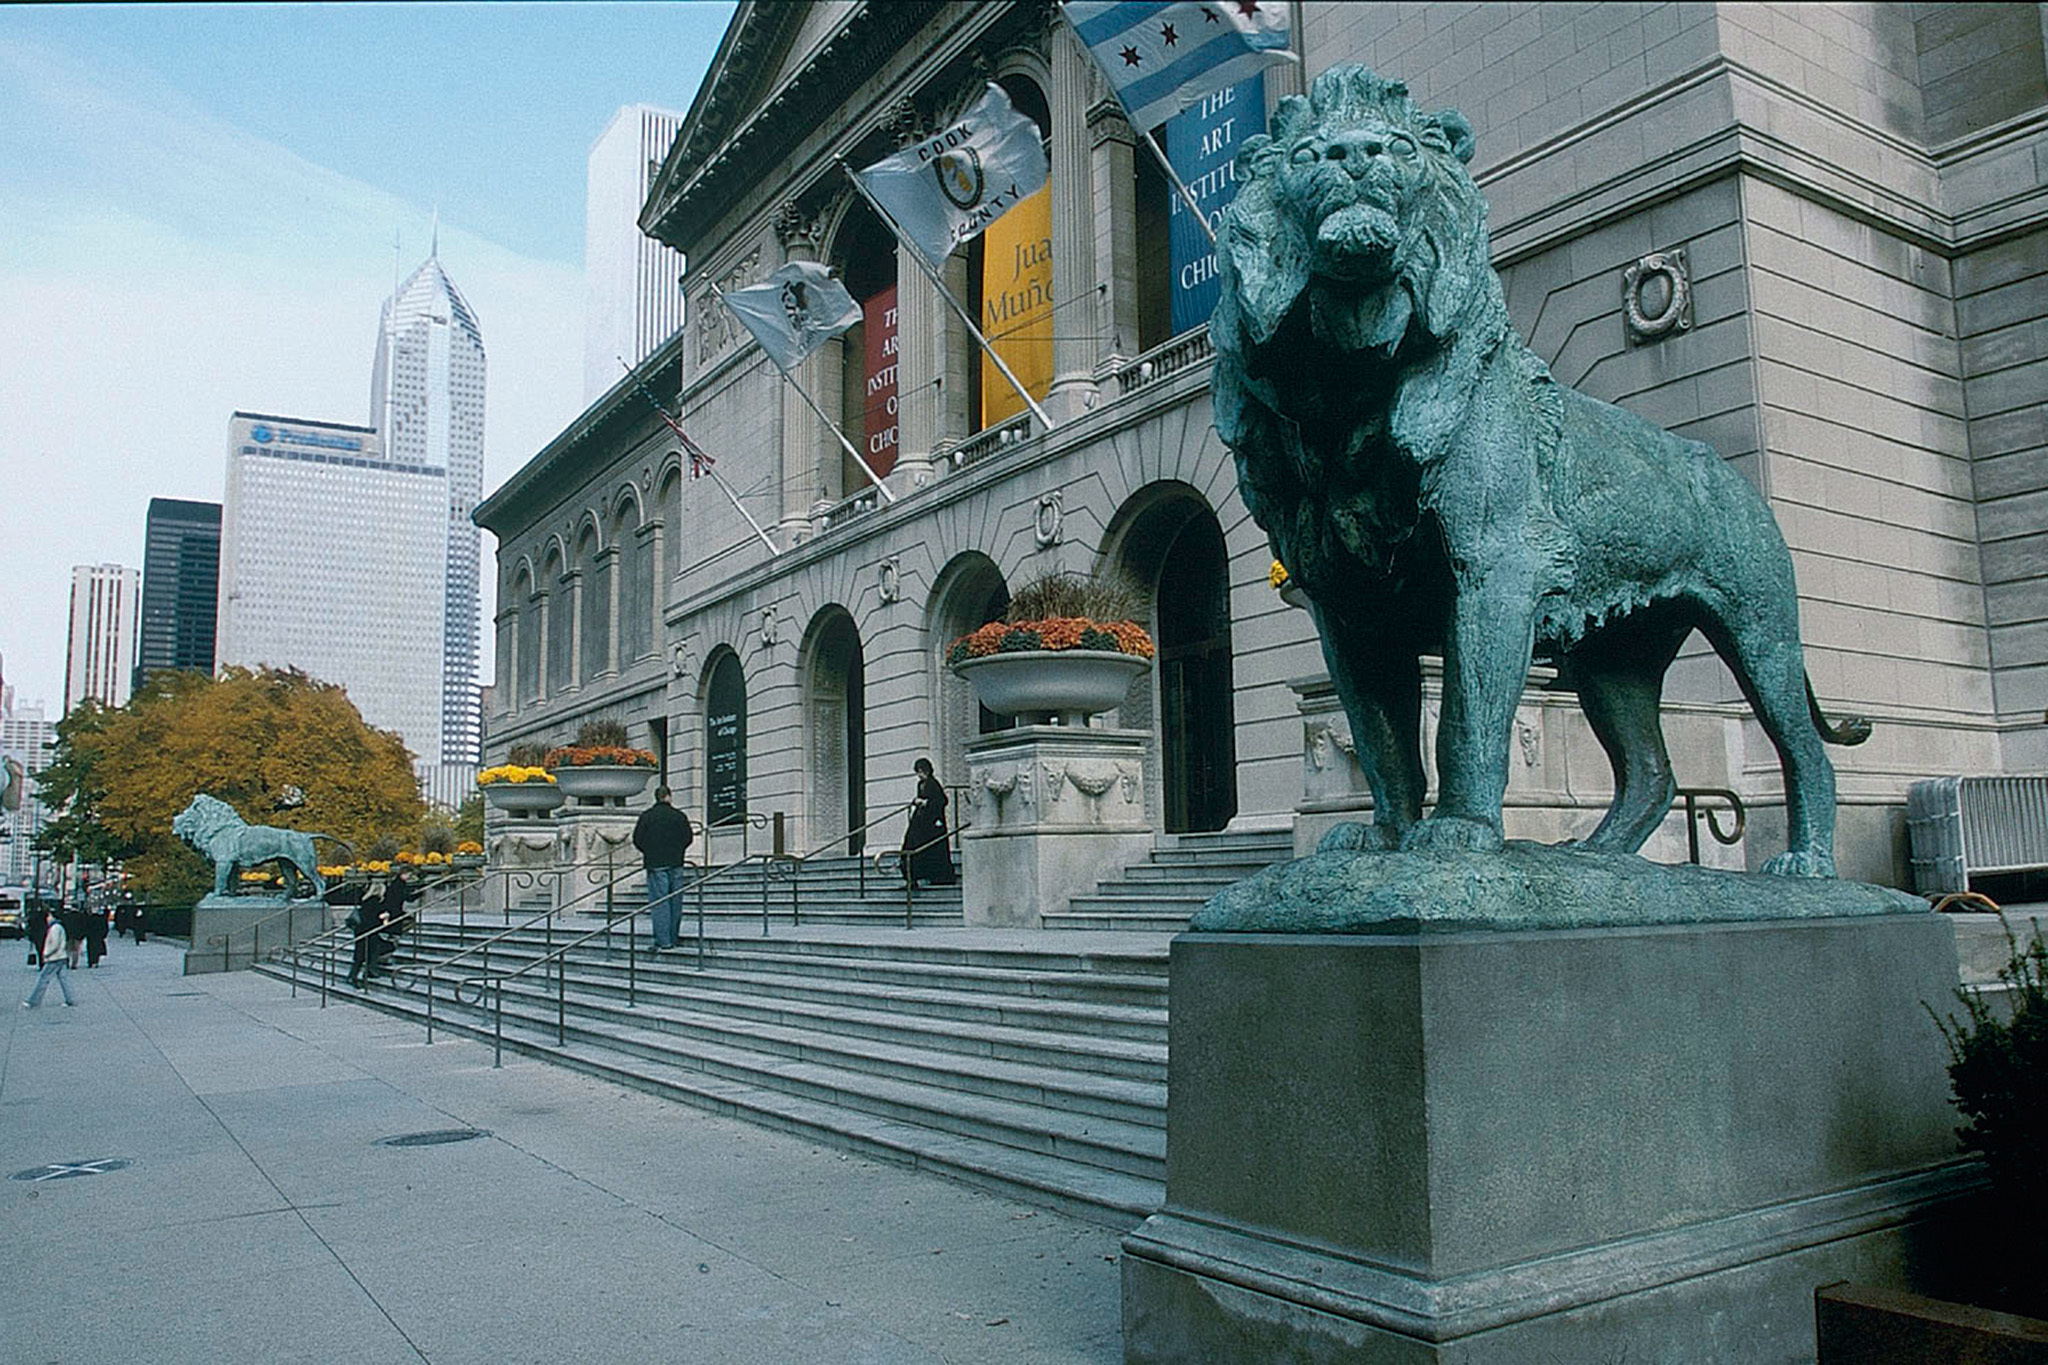 The Art Institute of Chicago; Chicago, IL